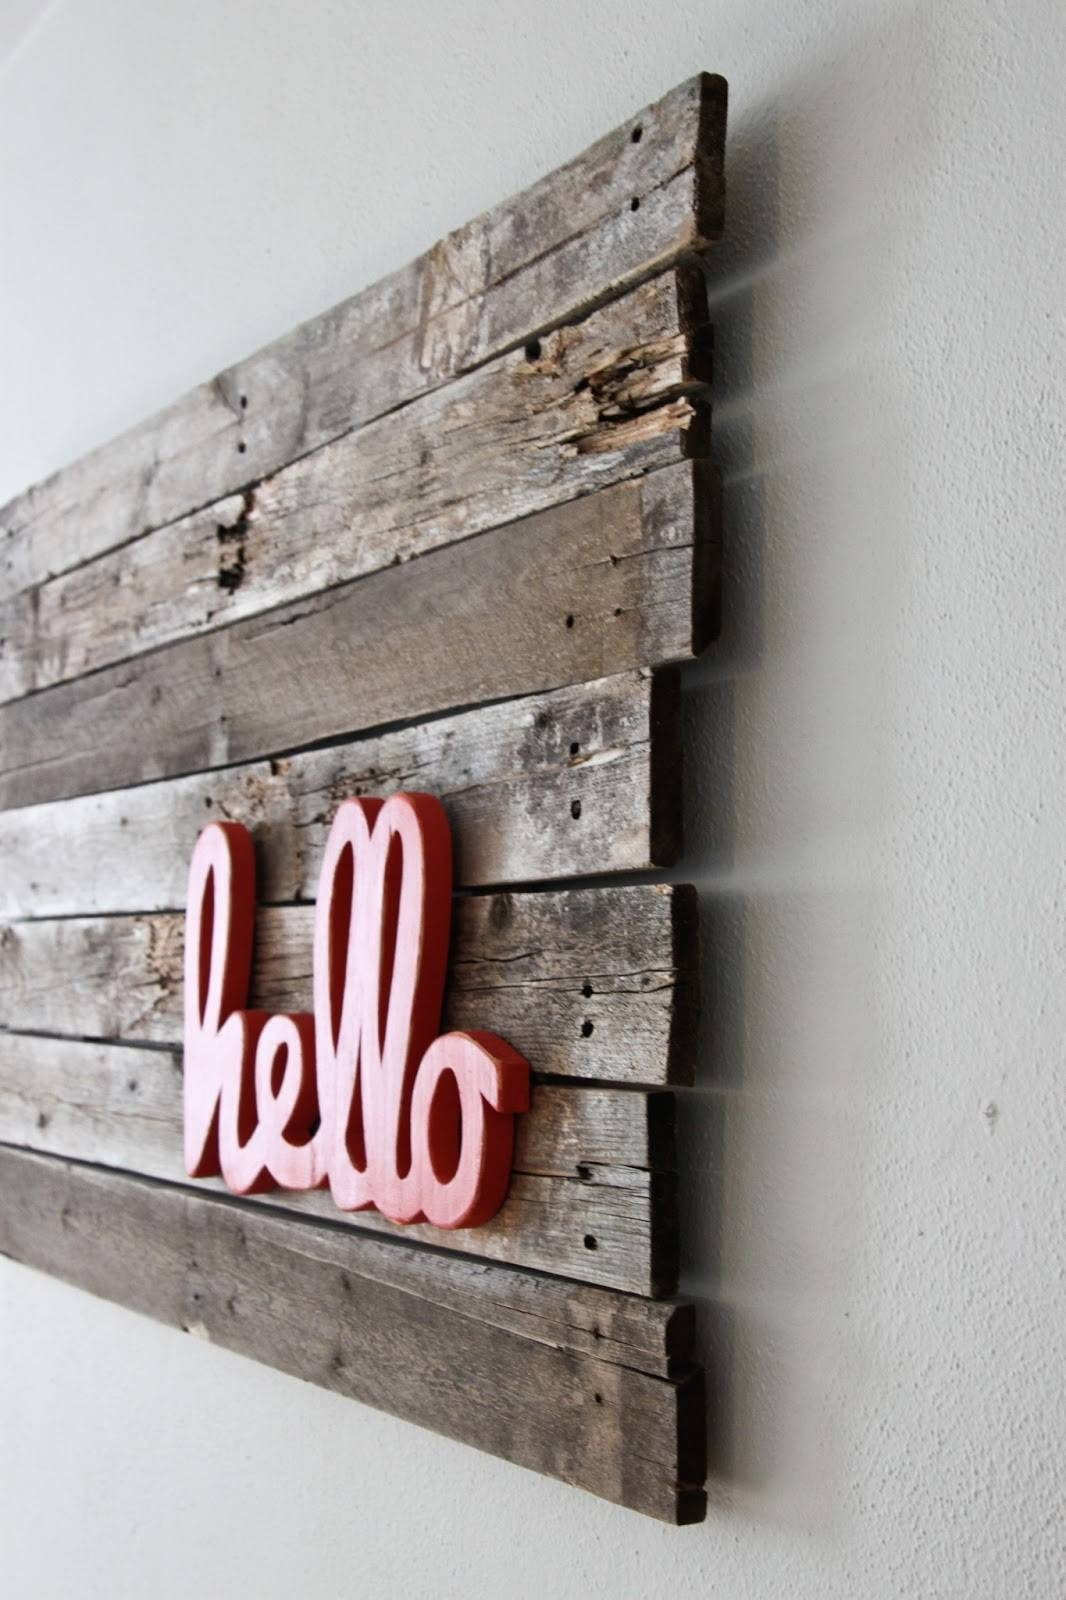 Wall Art Words Wooden Saw Word Like – Dma Homes | #89896 For 2018 Wooden Words Wall Art (Gallery 2 of 30)